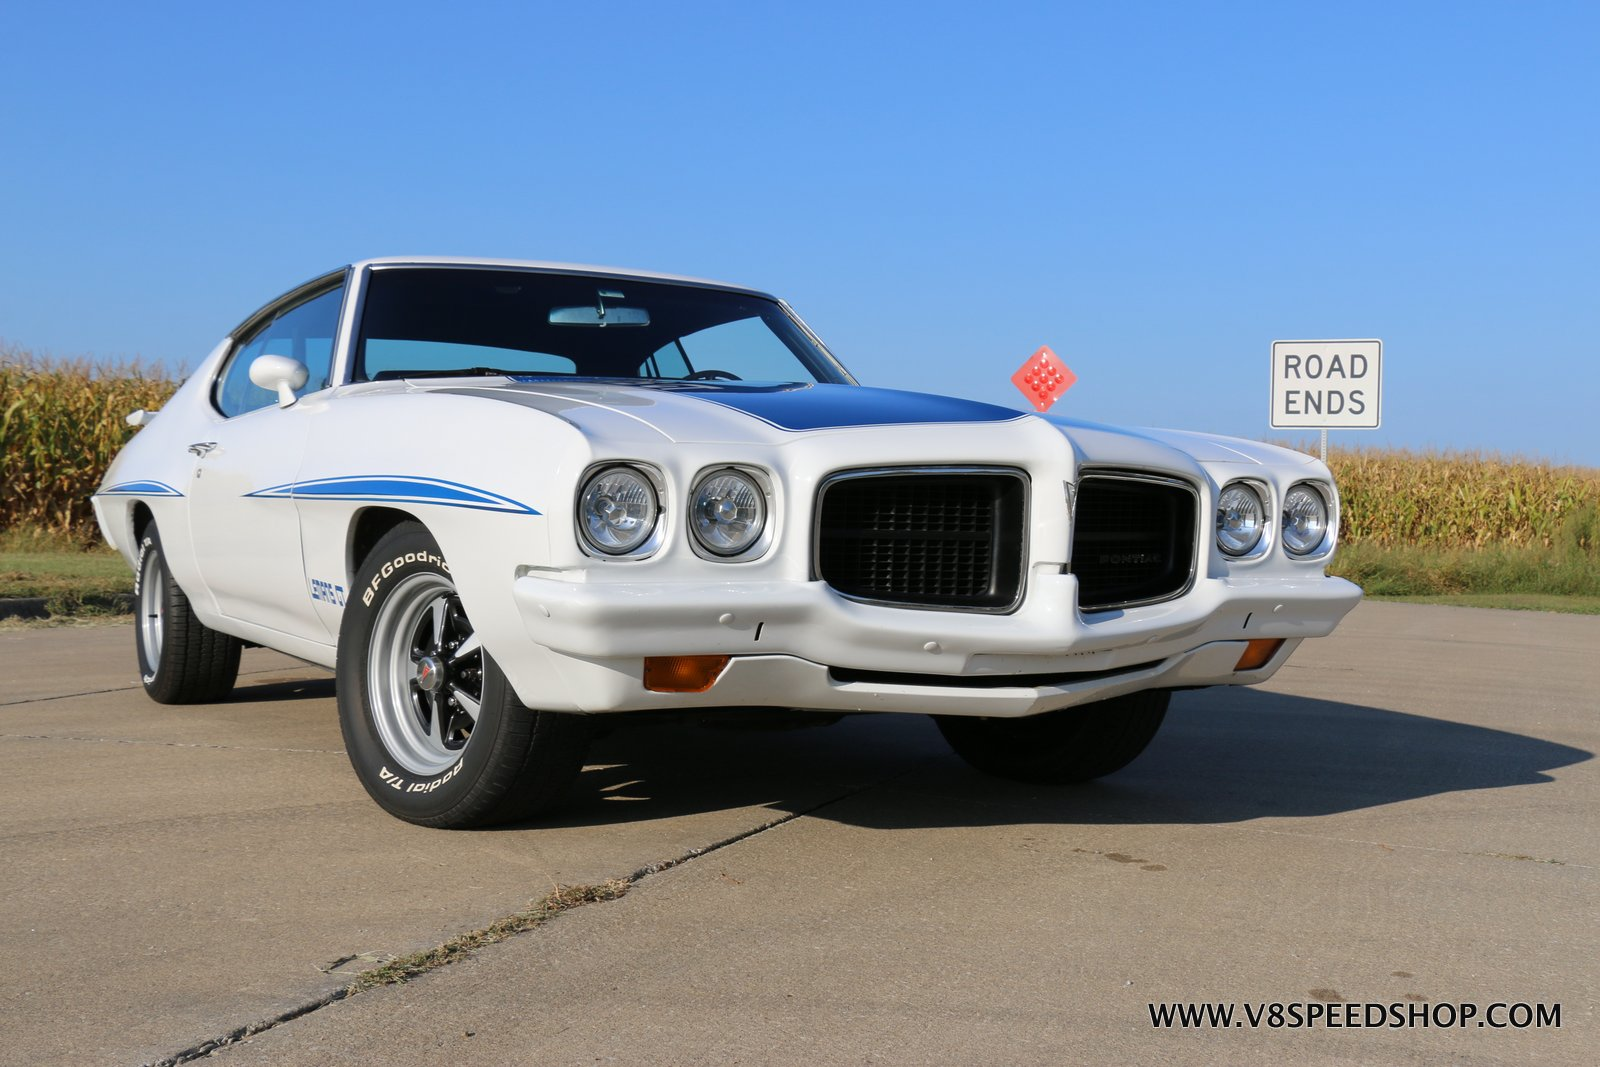 1972 Pontiac Lemans GT Maintenance and Upgrades at the V8 Speed and Resto Shop